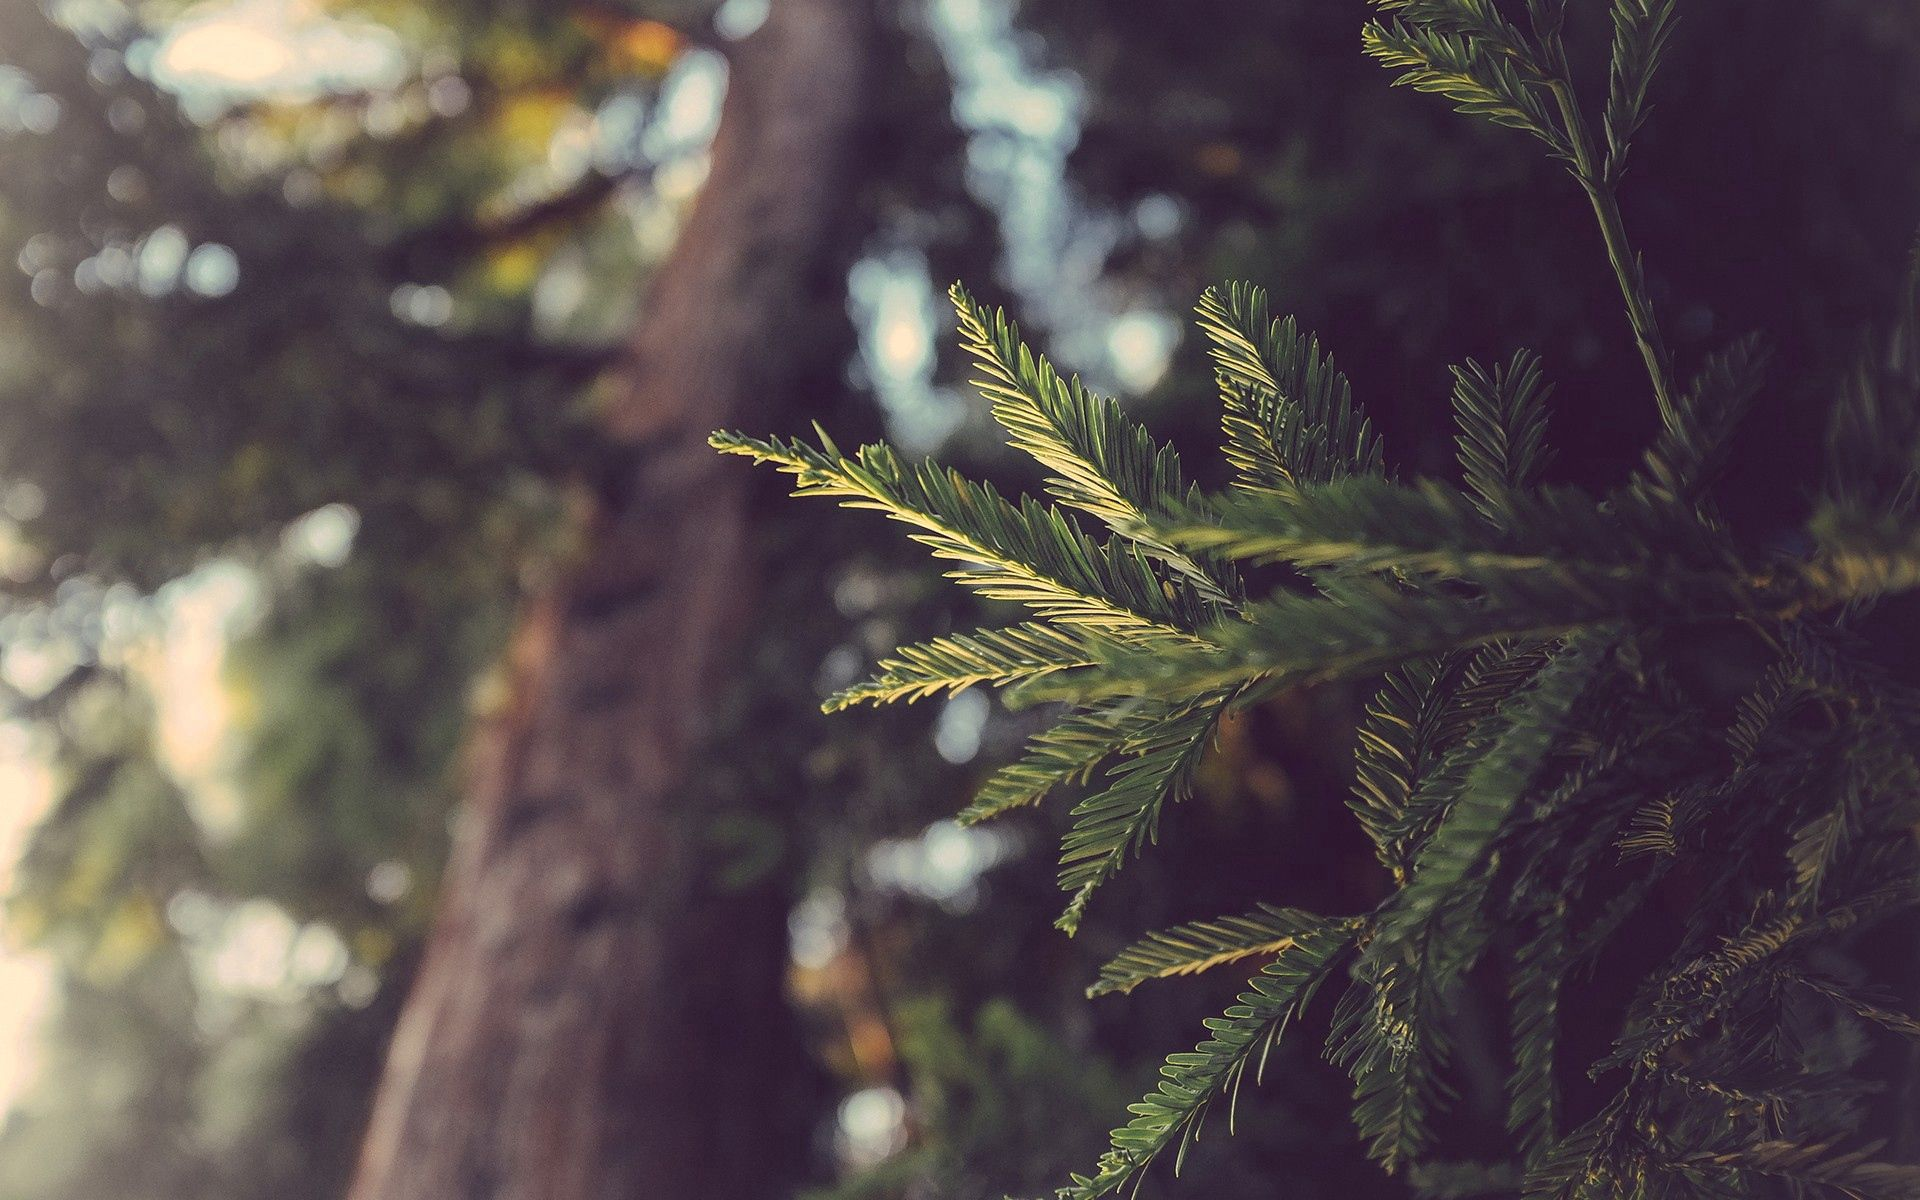 134970 download wallpaper Nature, Plant, Branch, Shadow screensavers and pictures for free